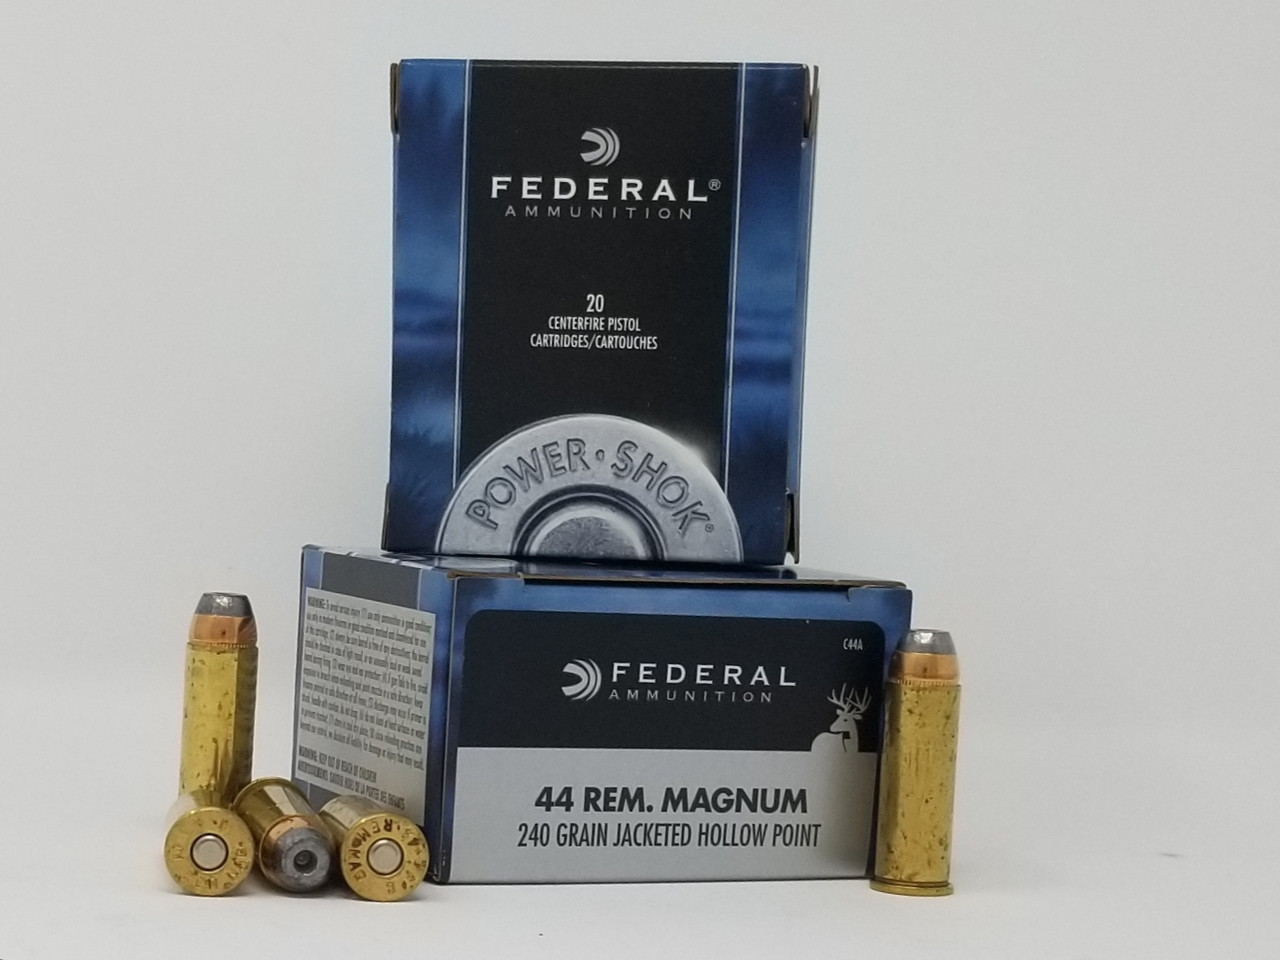 Federal 44 Rem Mag Ammunition Power-Shok C44A 240 Grain Jacketed Hollow  Point 20 Rounds